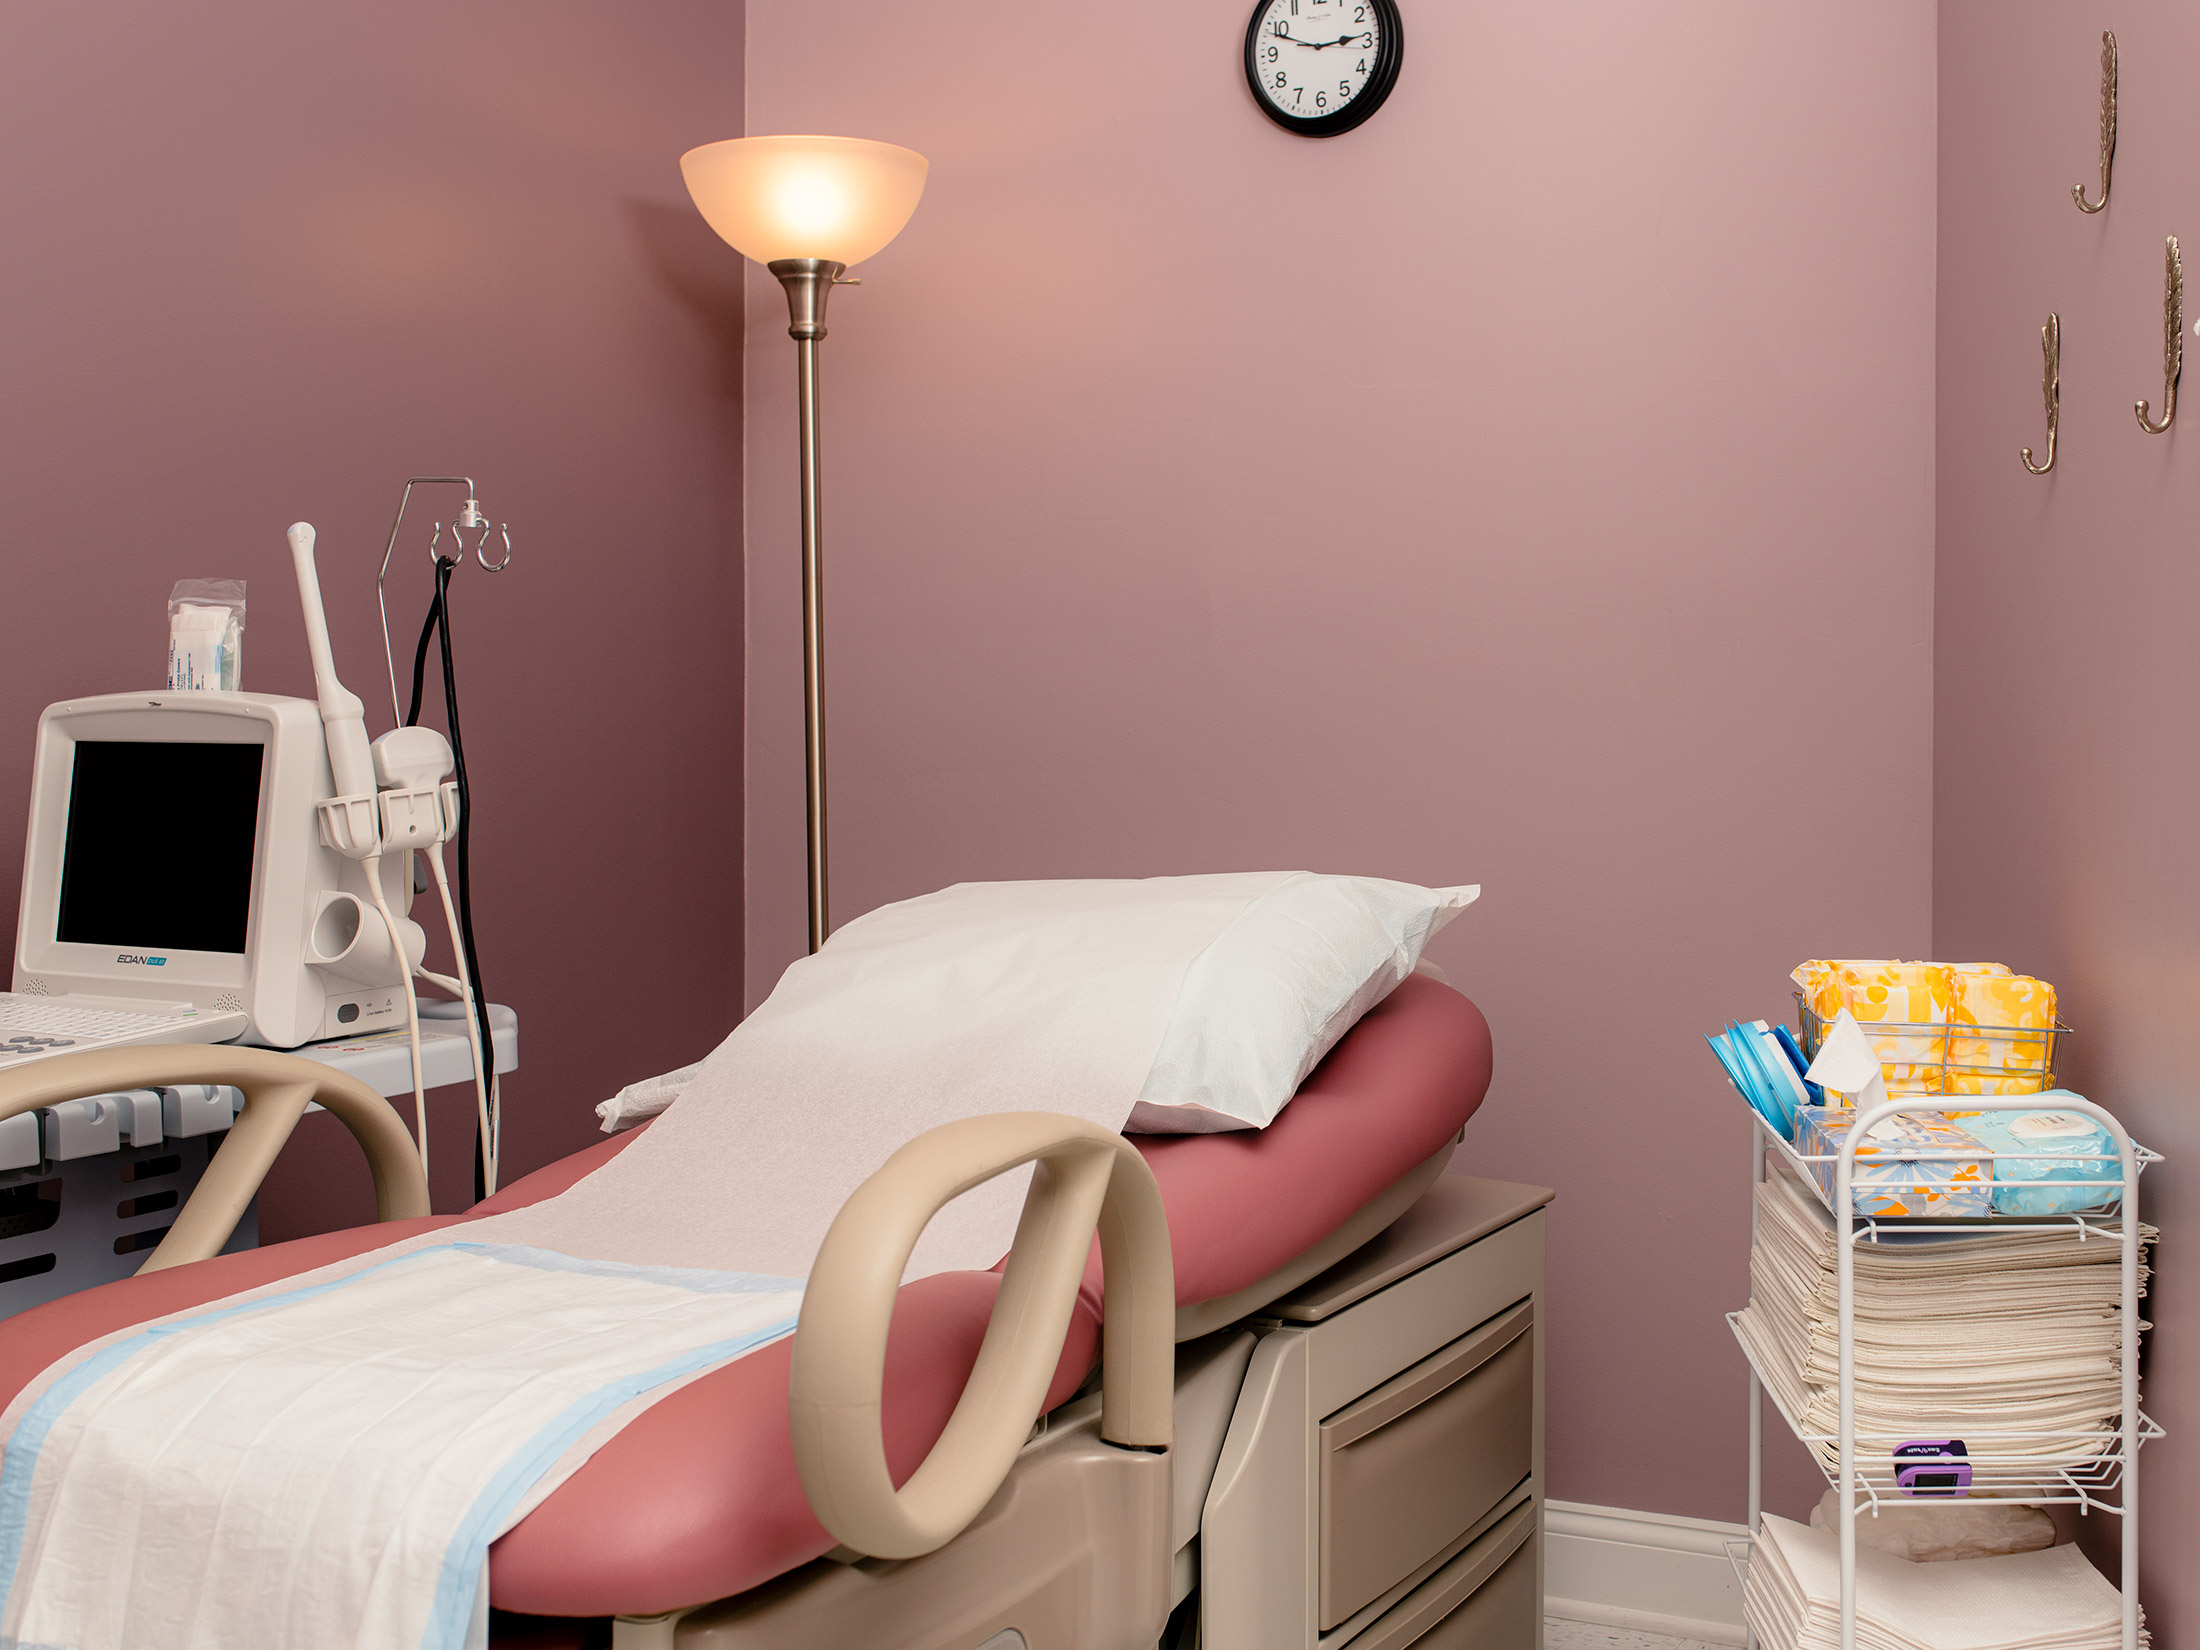 Abortion Clinics Are the Most Challenging Small Business in America -  Bloomberg